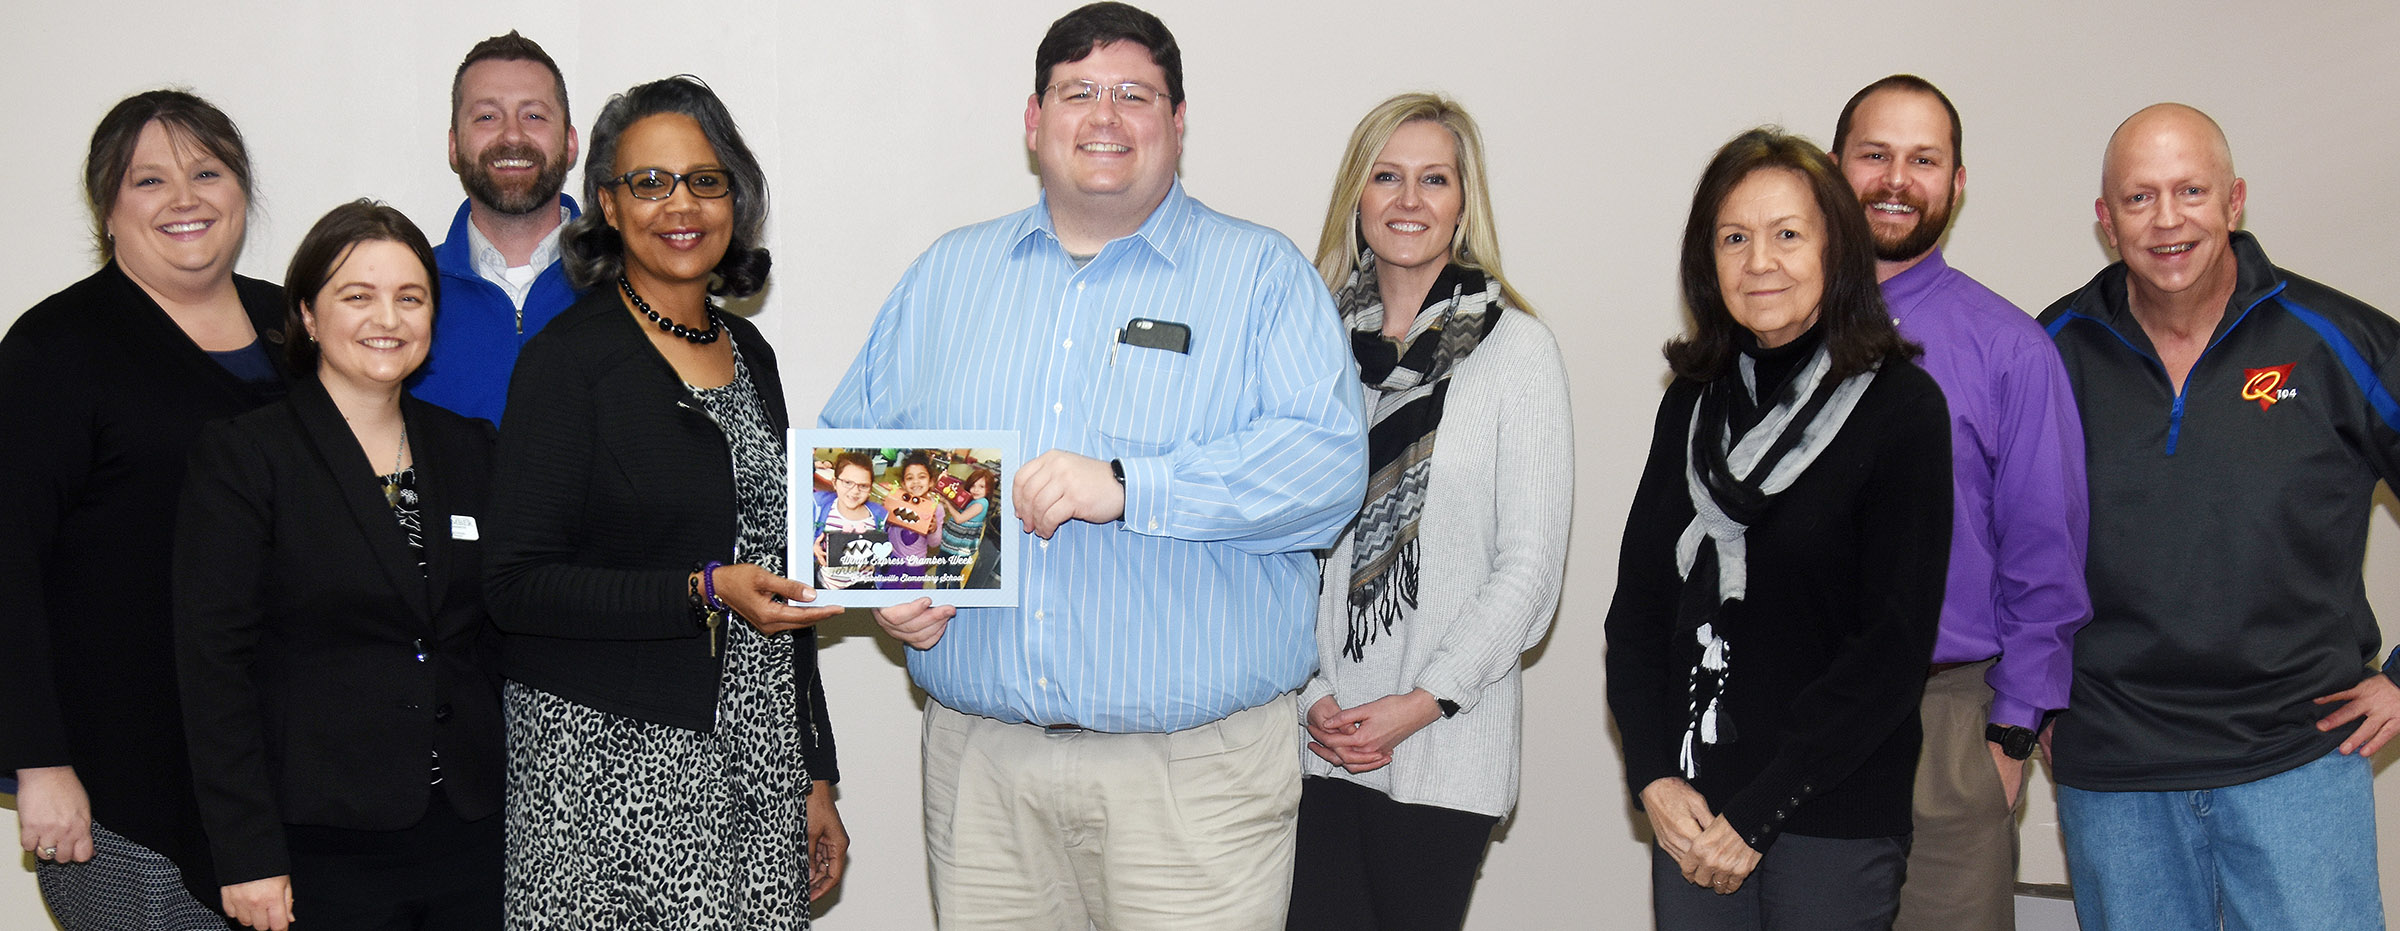 Campbellsville Elementary School Wings Express Director Doretha Sanders recently thanked community partners Campbellsville/Taylor County Chamber of Commerce Board members for hosting a week of special activities at the school. Sanders presented Board members with a book that features photos taken during the events. Pictured with Sanders are, from left, Board member Latasha Bell, Chamber Interim Director Niki Marineau, Board member Chad Shively, Sanders, Chamber Board President Jeremy Wood and Board members Leslie De Grez, Pat Cowherd, Austin Tedder and Rob Collins.